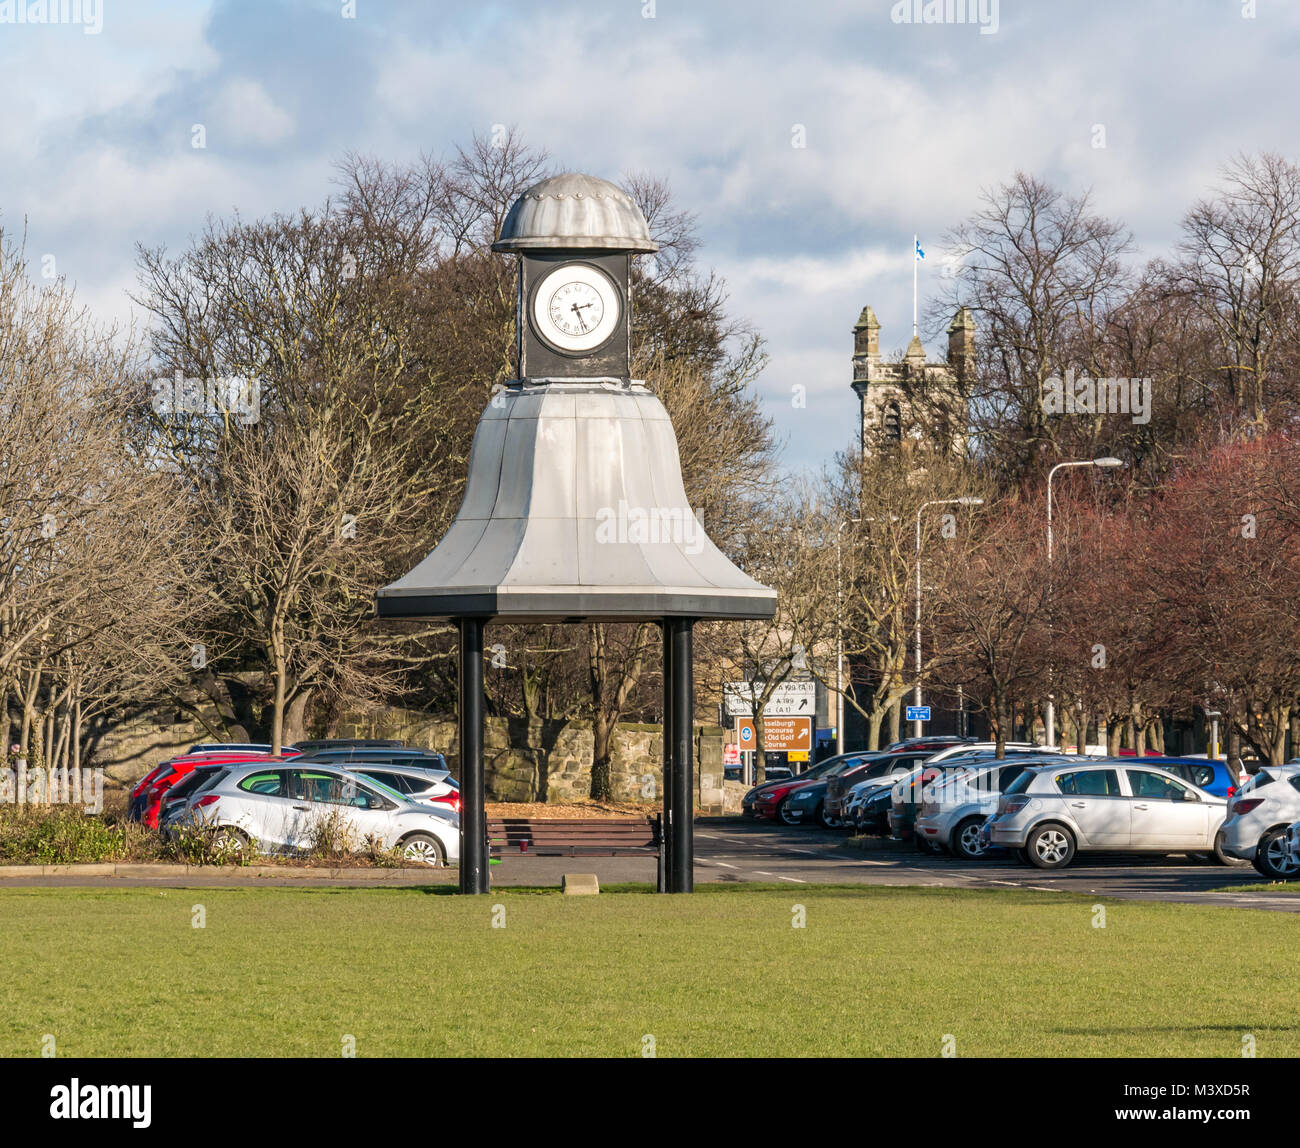 Old Hayweights clock with afternoon time, Mall Avenue, Musselburgh, East Lothian, Scotland UK, with cars in car - Stock Image